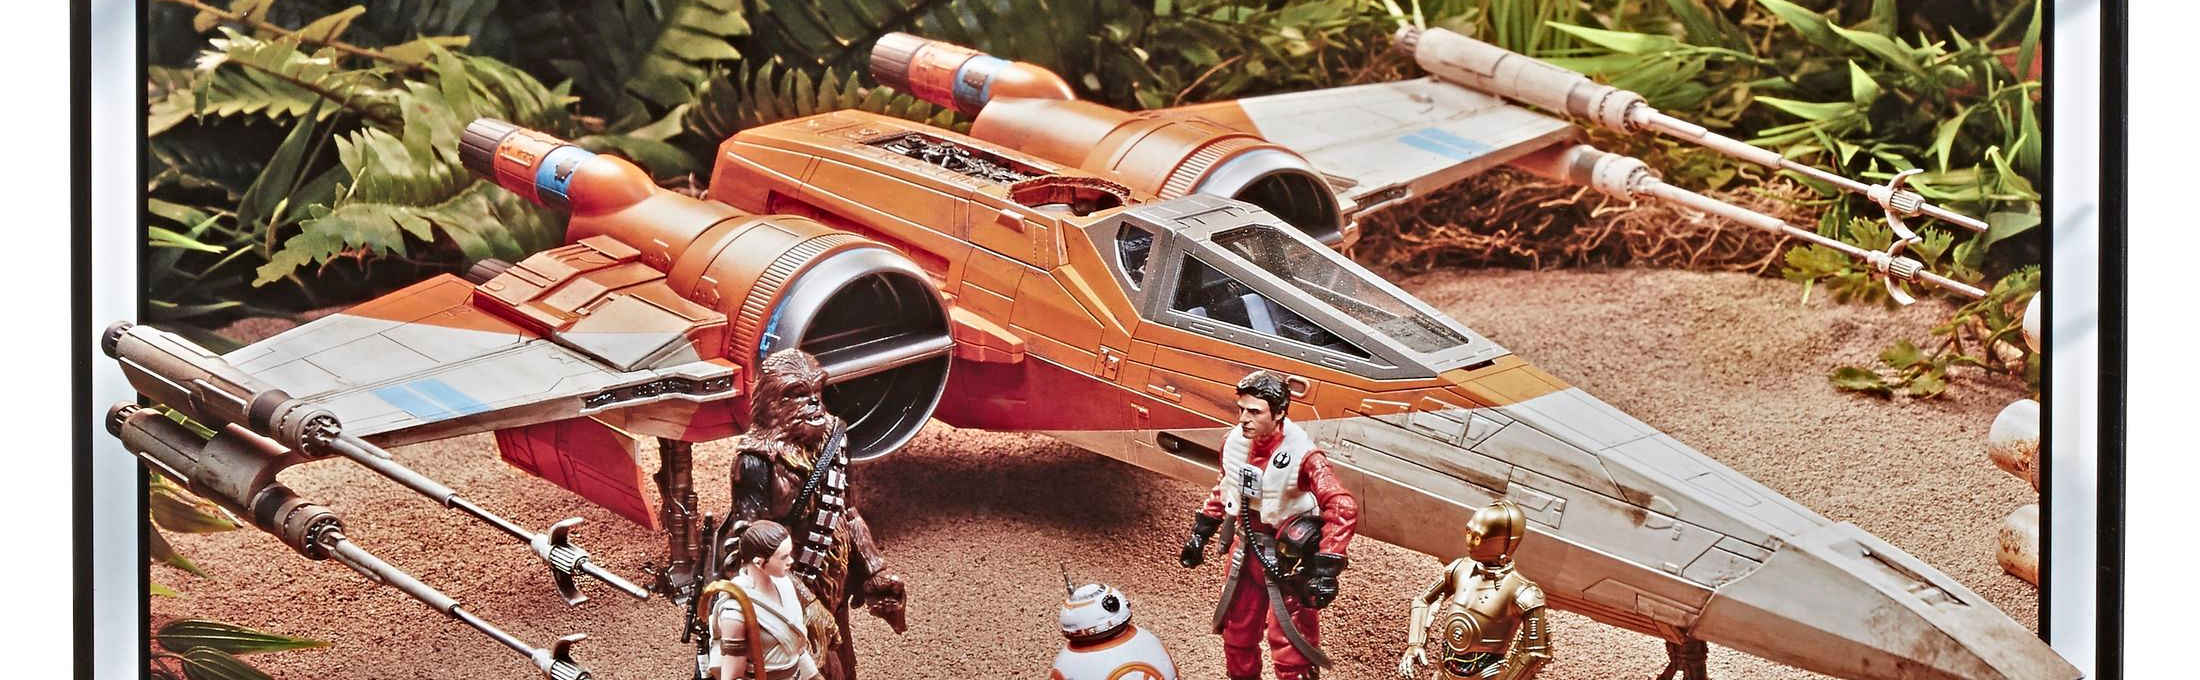 Poe Dameron Gets A New Orange X Wing In The Rise Of Skywalker With R2 D2 Star Wars Thoughts